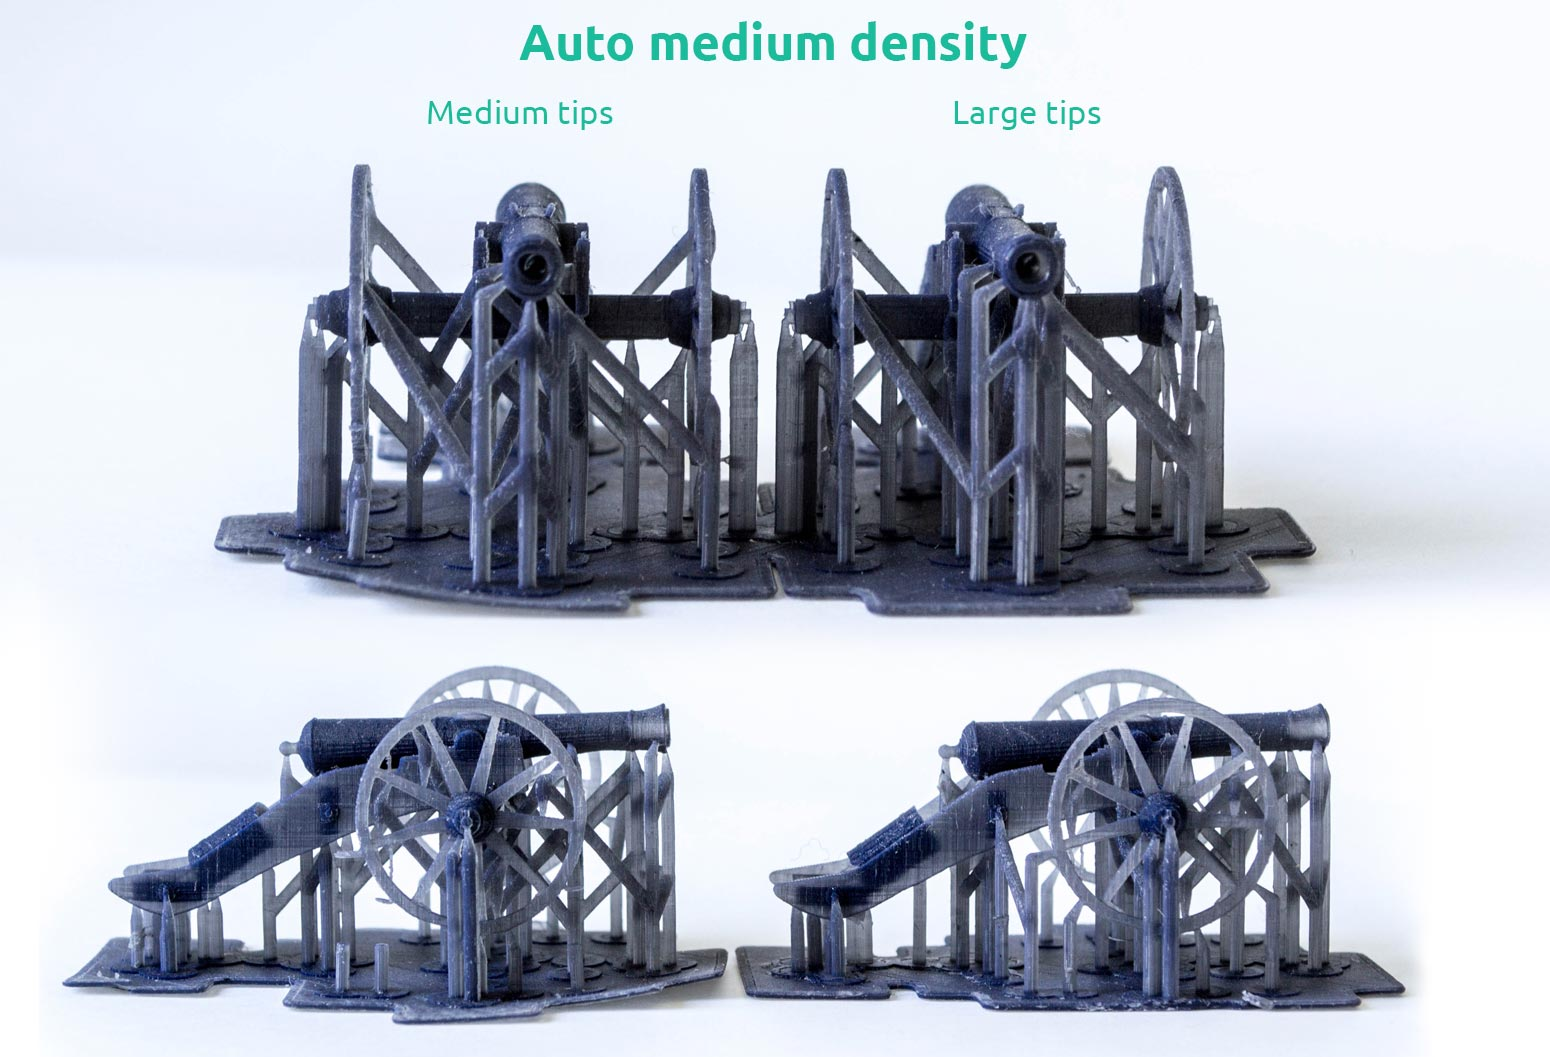 AmeraLabs key principles of 3D printing supports that work experiment moai 3D printed cannons medium